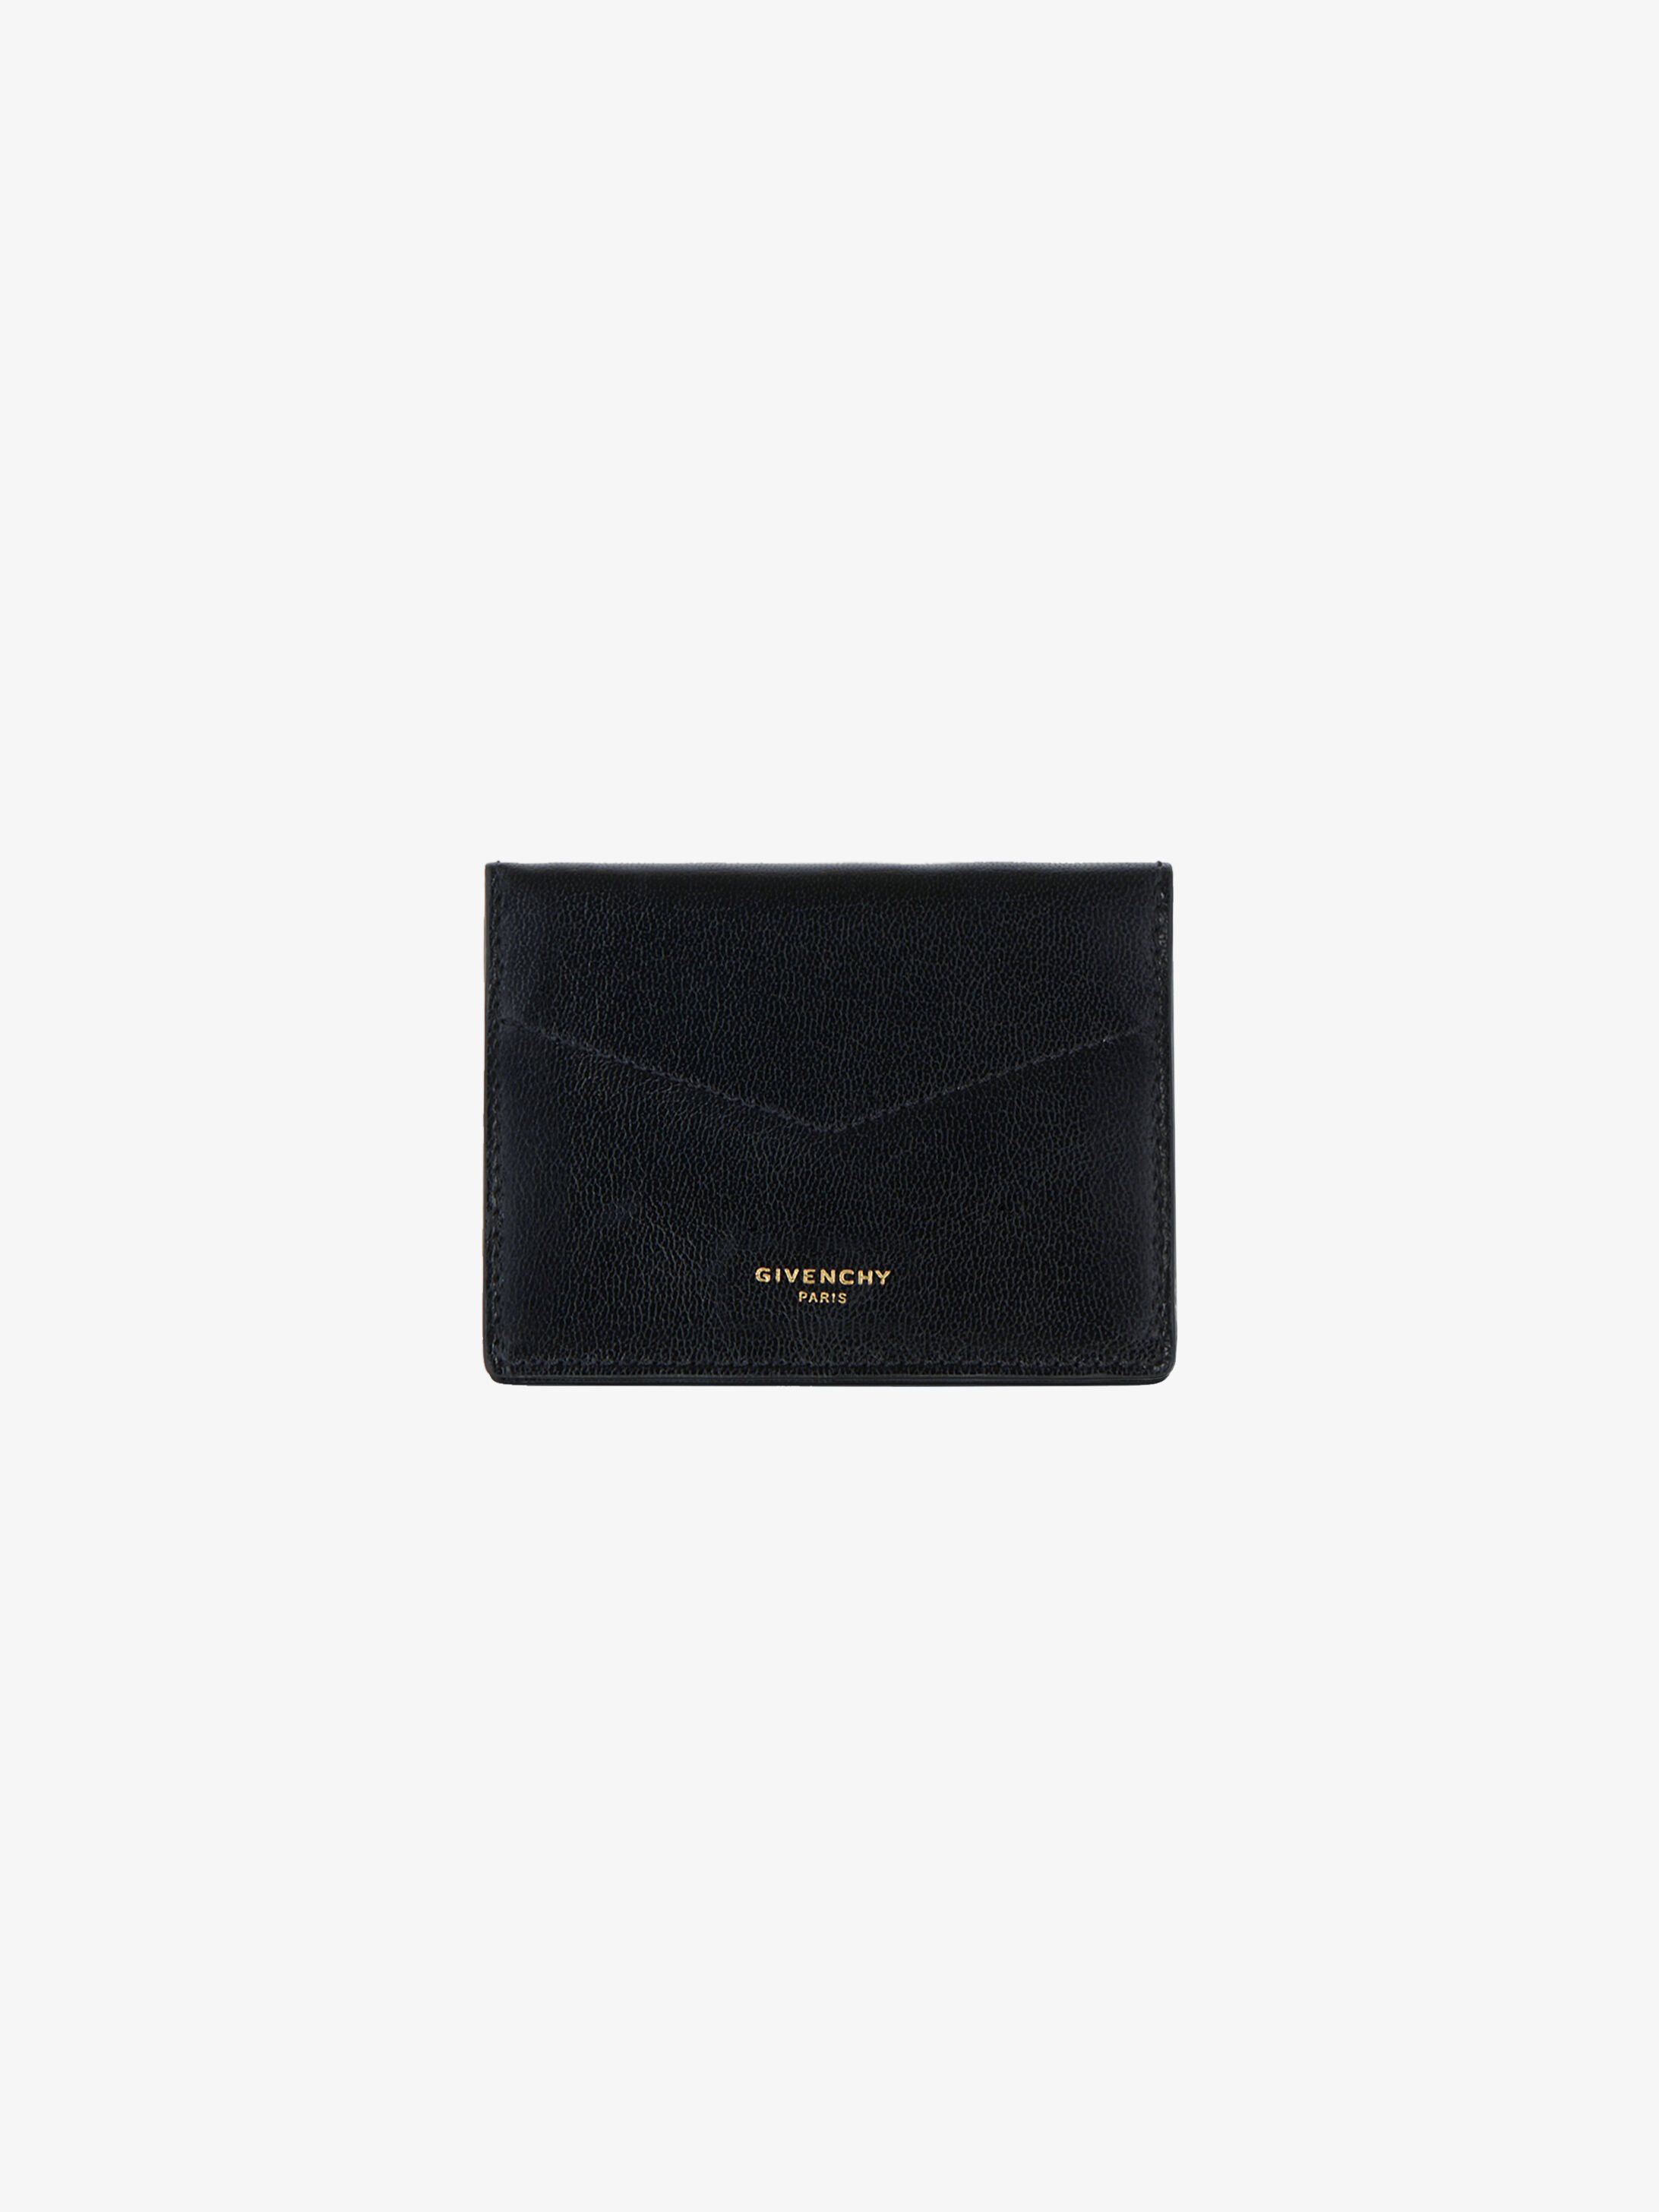 137169120caa Women s Wallets collection by Givenchy.